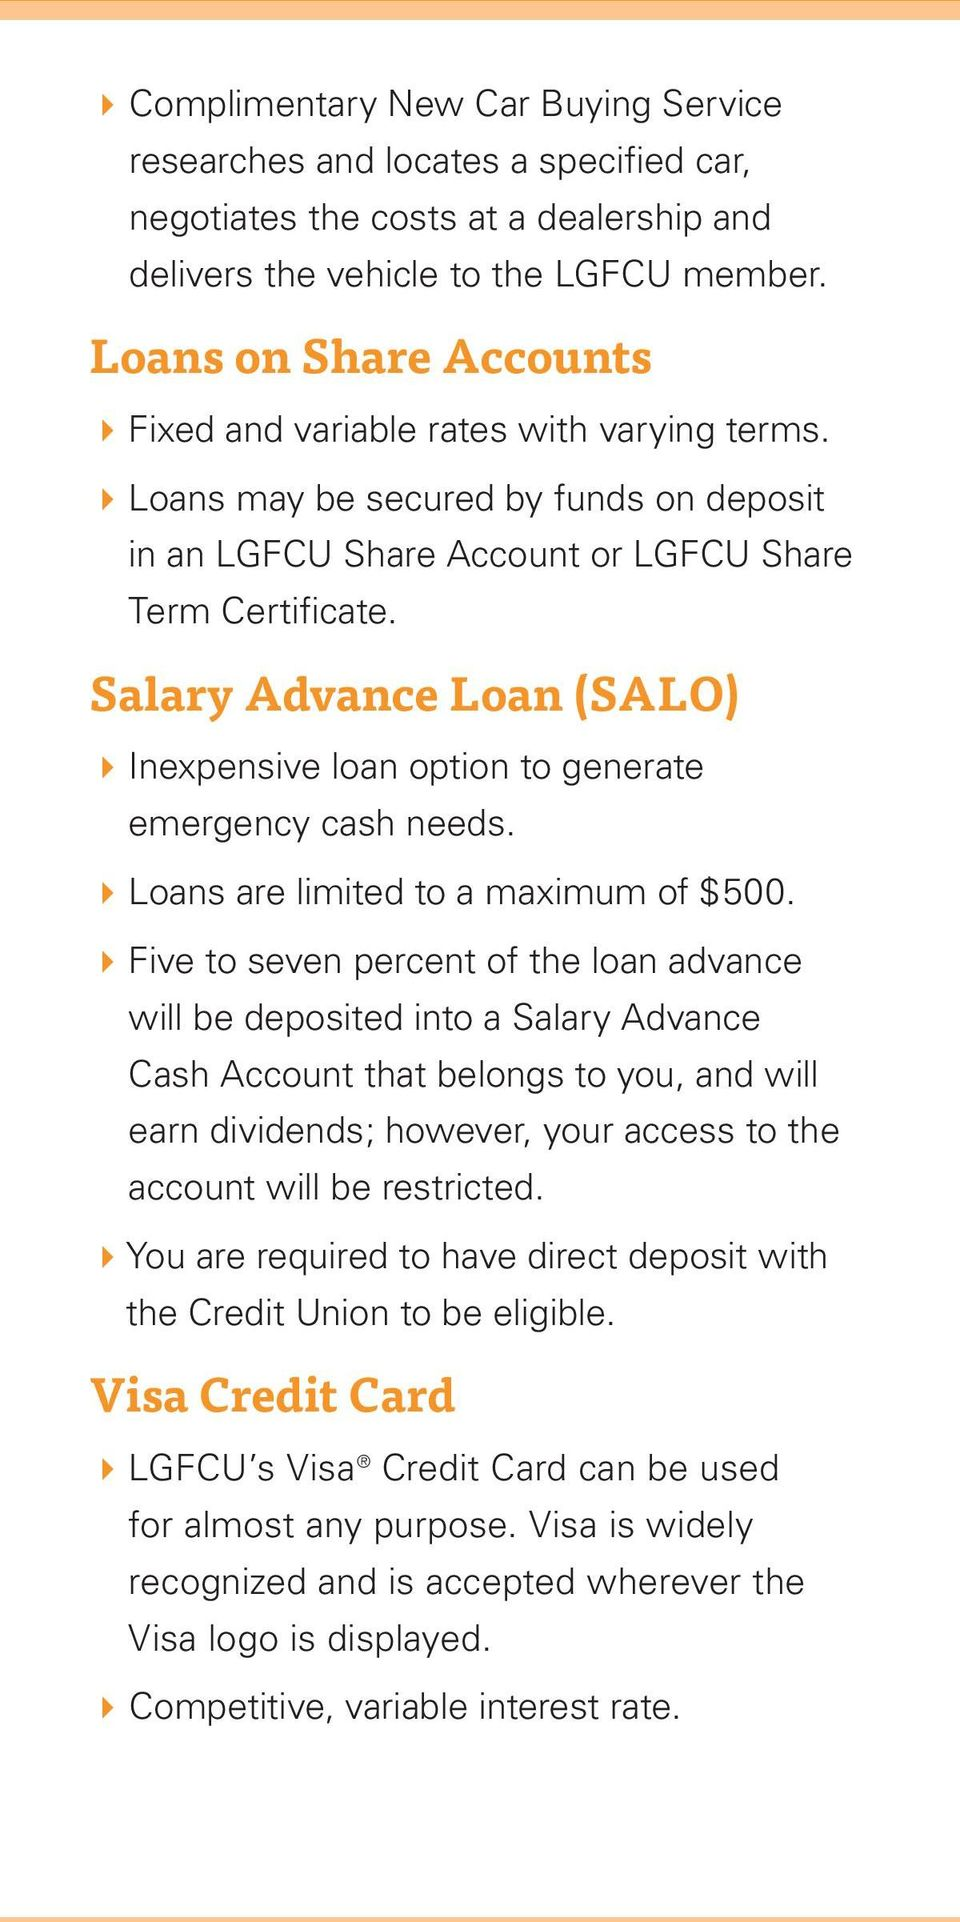 Salary Advance Loan (SALO) 4Inexpensive loan option to generate emergency cash needs. 4Loans are limited to a maximum of $500.